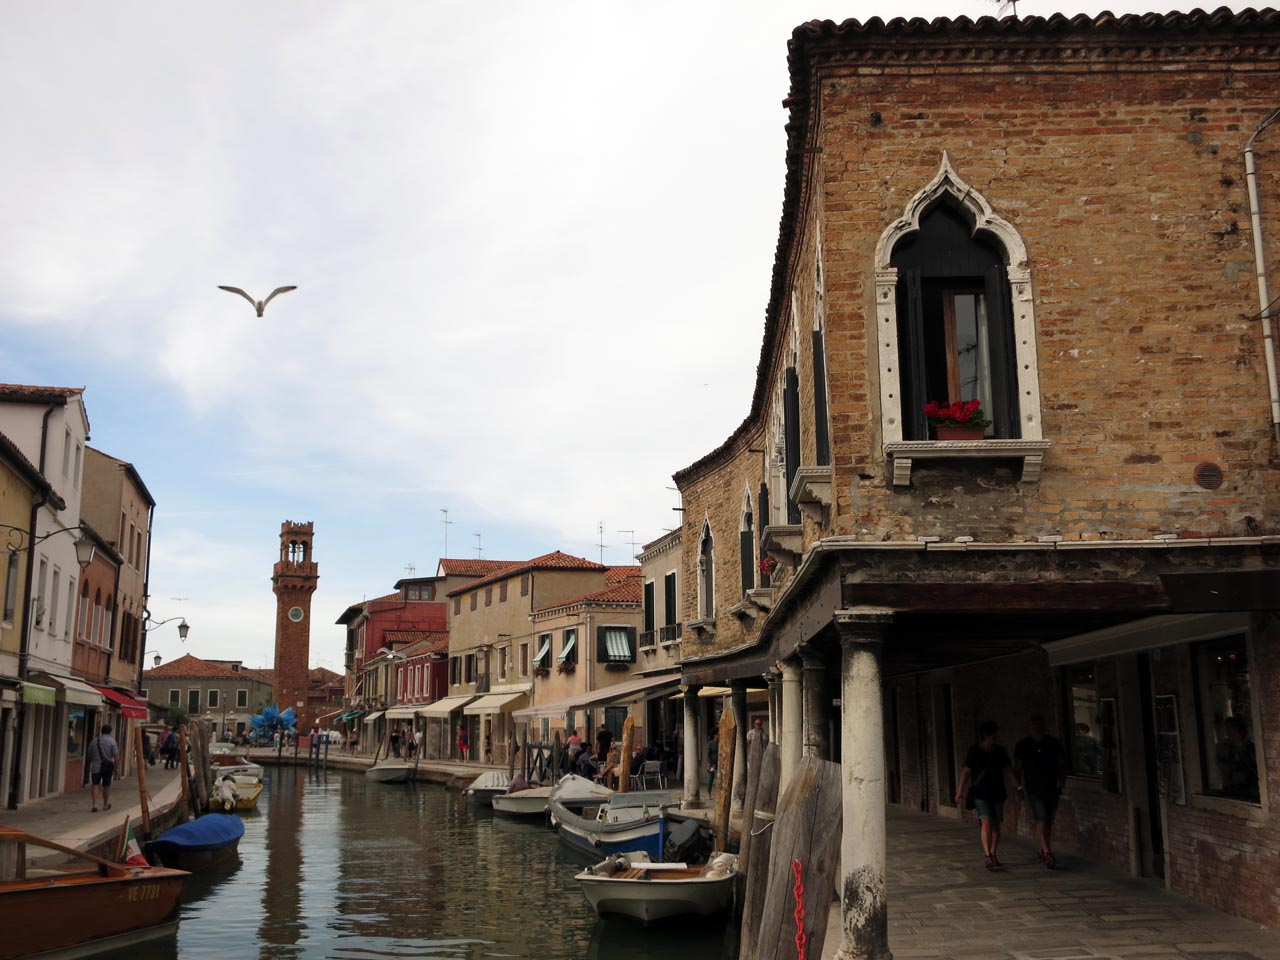 Sotoportego (covered walkway) in Murano